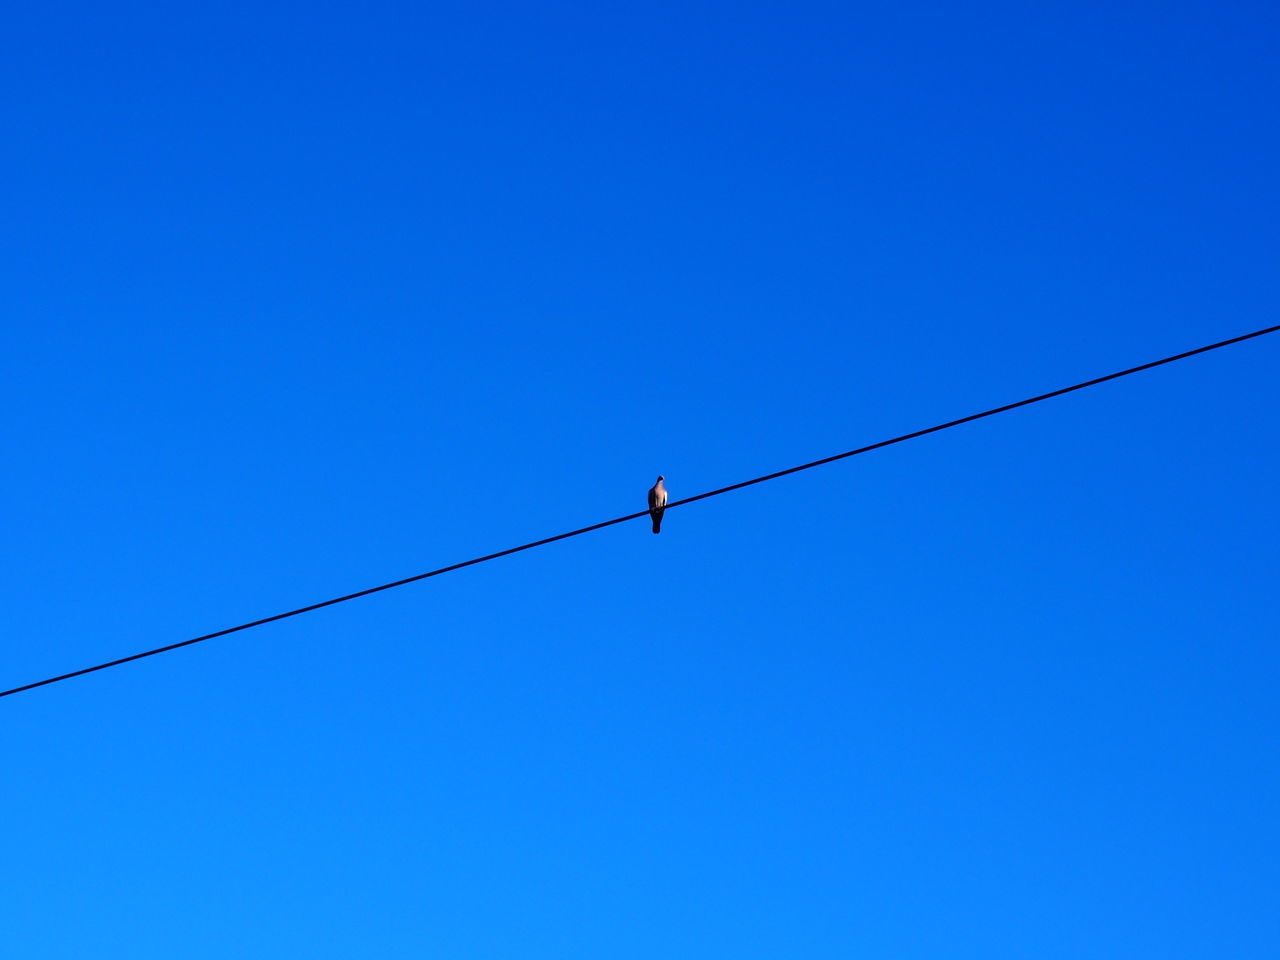 blue, copy space, clear sky, cable, low angle view, animals in the wild, day, one animal, outdoors, one person, real people, animal themes, bird, nature, full length, perching, people